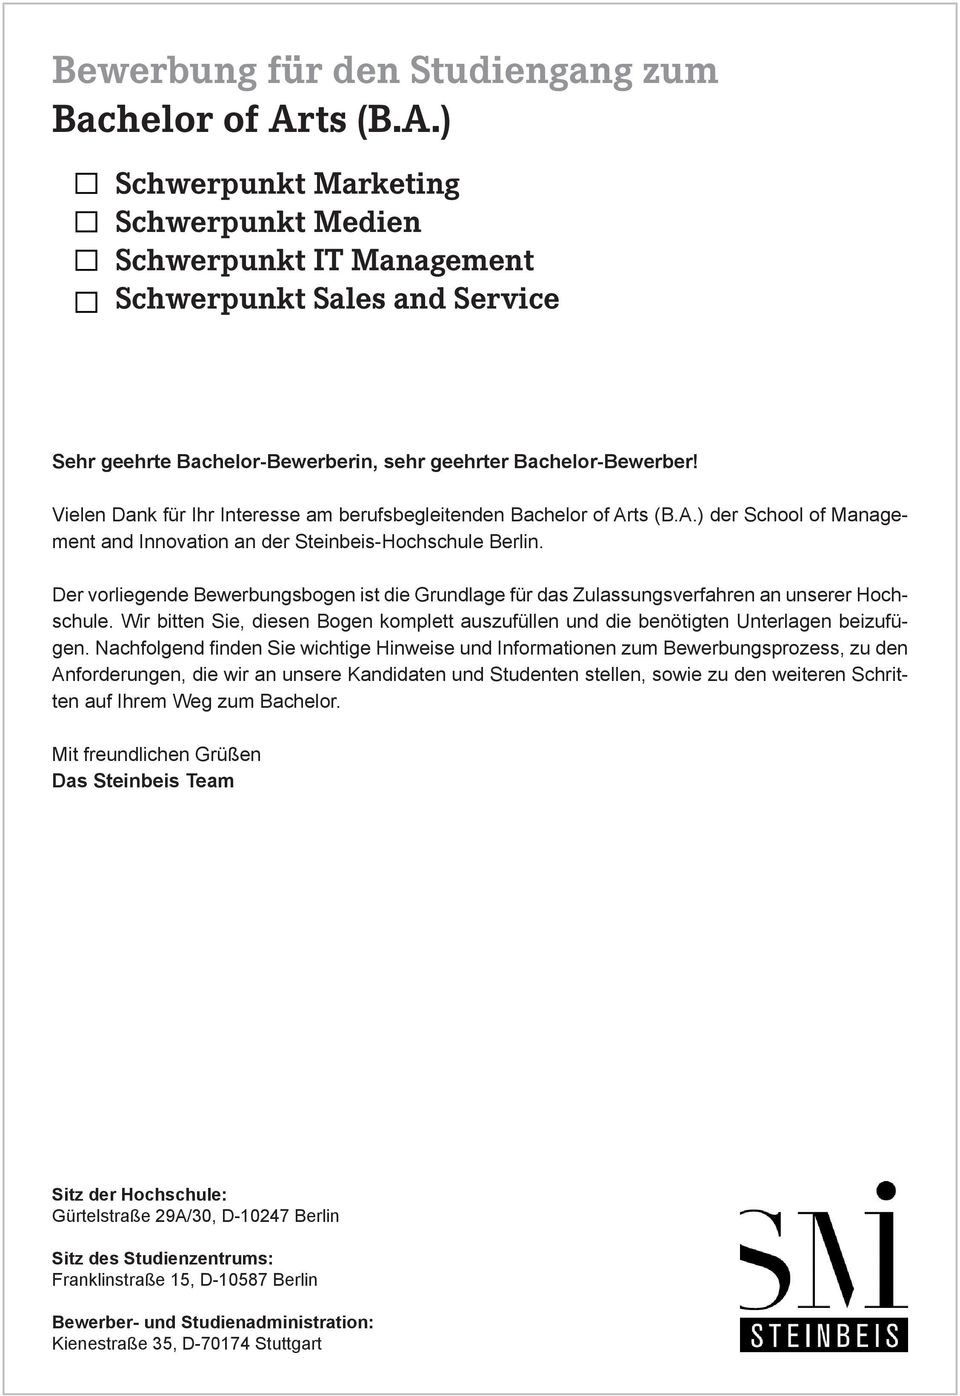 Vielen Dank für Ihr Interesse am berufsbegleitenden Bachelor of Arts (B.A.) der School of Management and Innovation an der Steinbeis-Hochschule Berlin.